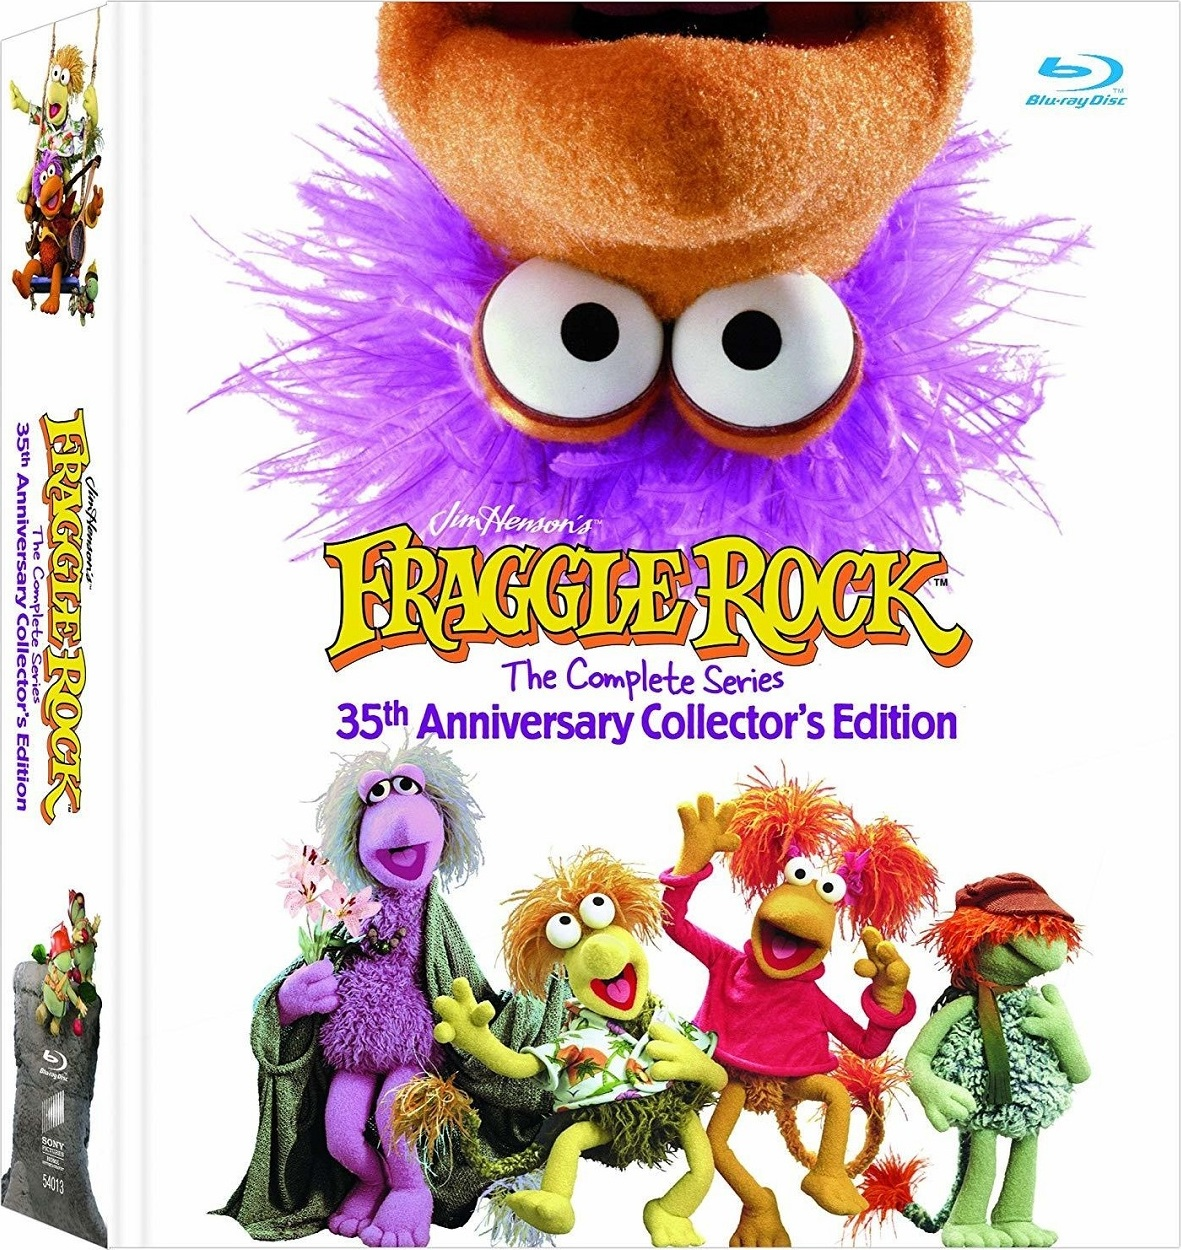 Fraggle Rock: The Complete Series (Blu-ray)(Region A)